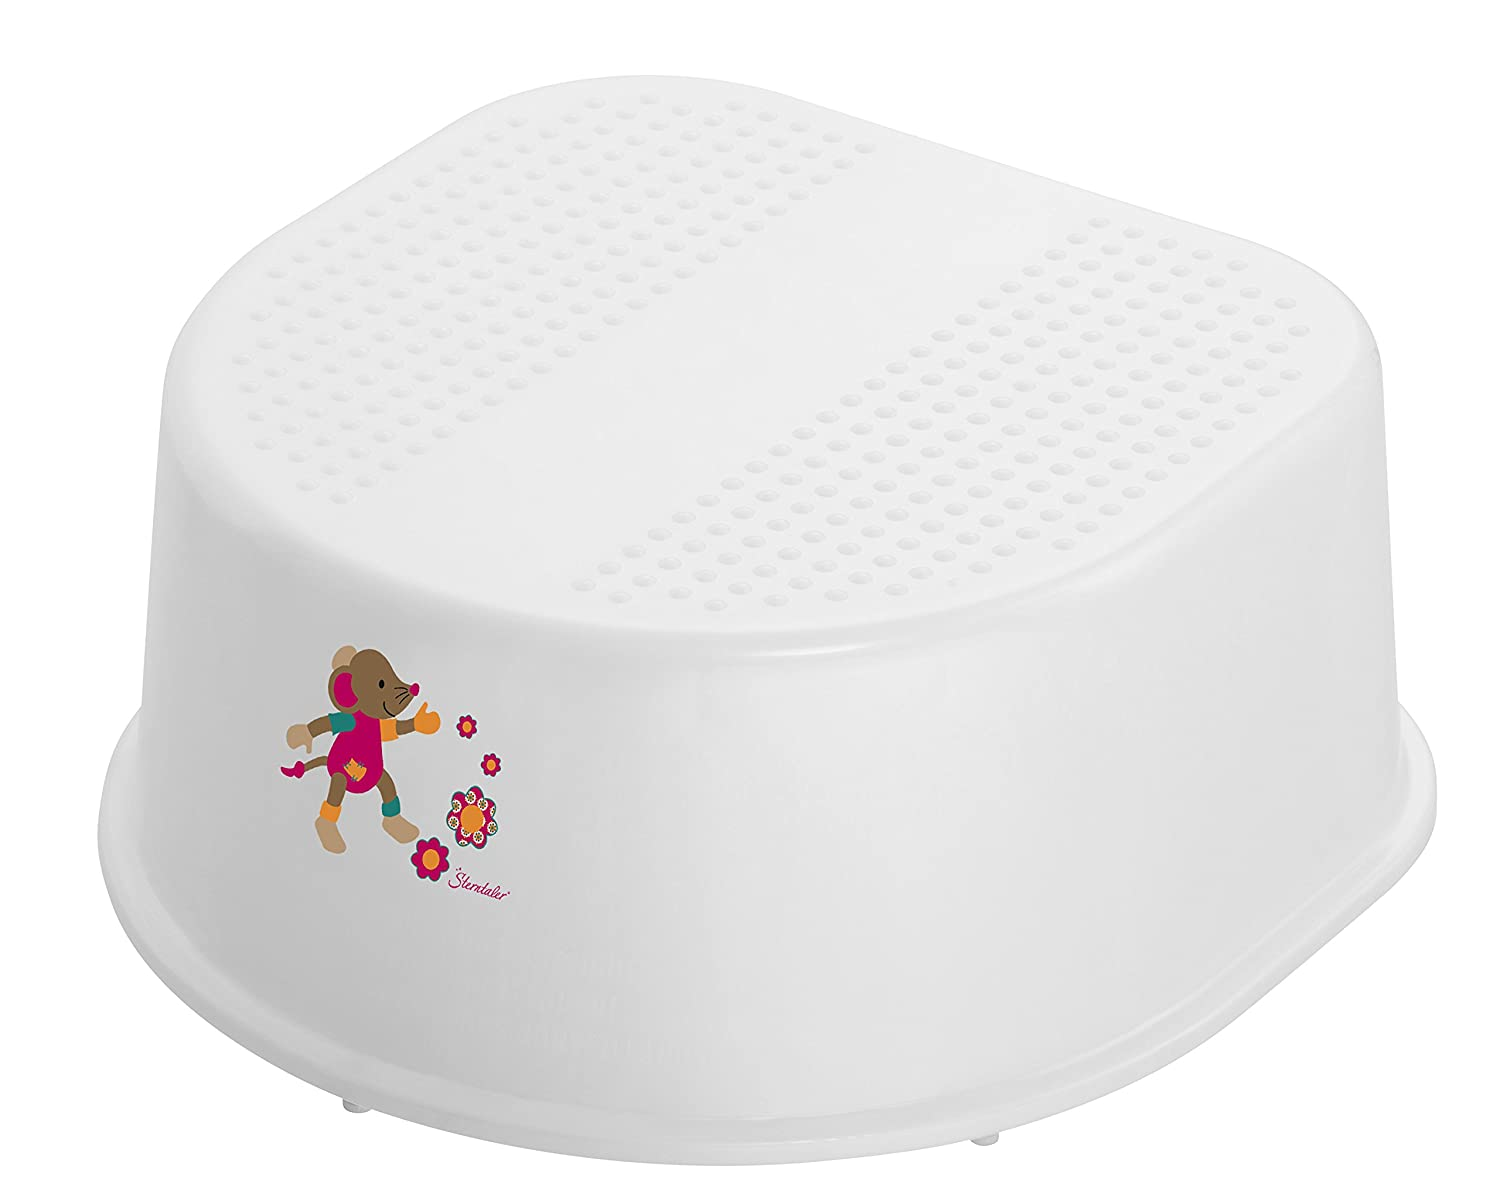 Rotho Babydesign BB Sterntaler Mabel Step Stool 20024 0100 BL